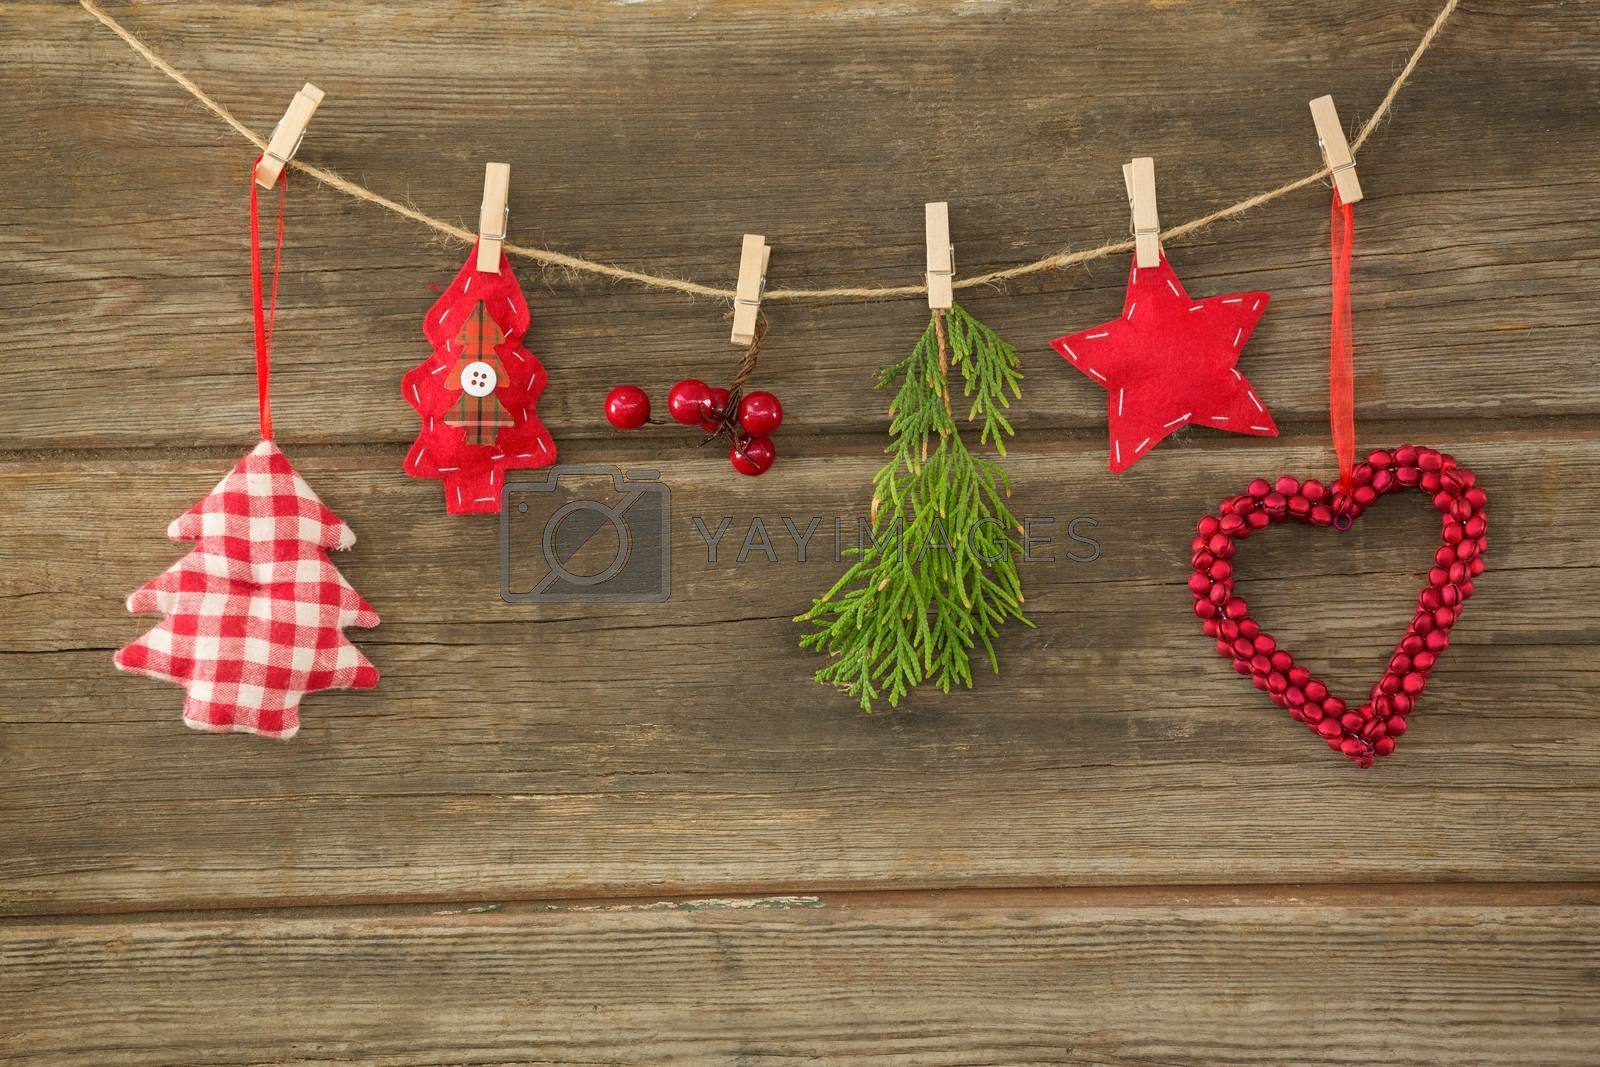 Christmas decorations hanging against wooden wall by Wavebreakmedia